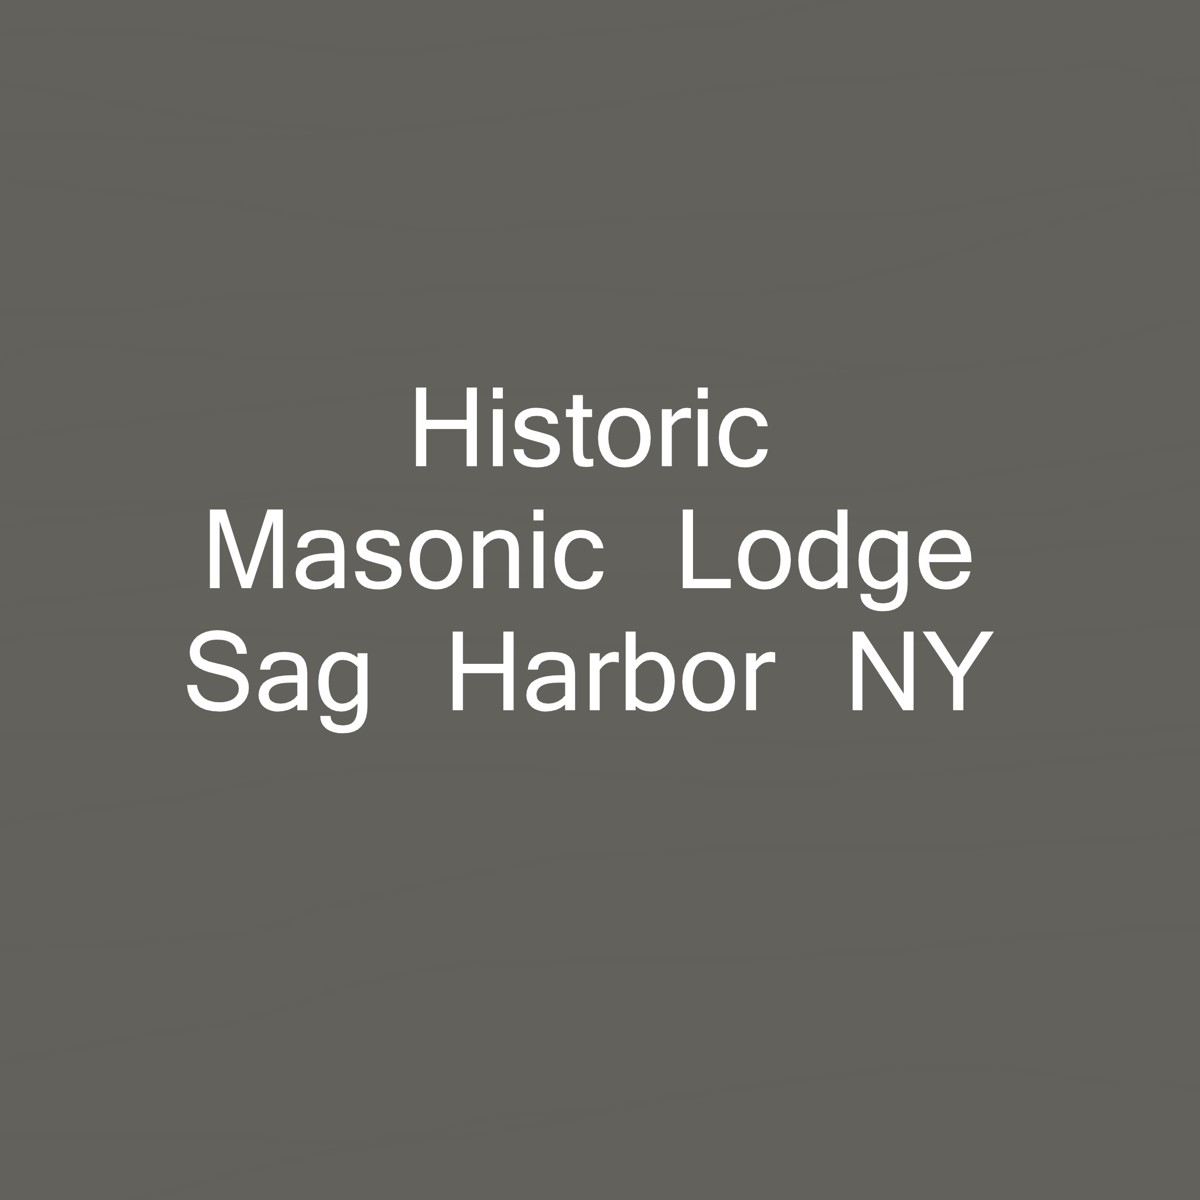 Sag Harbor Masonic Lodge. Completed: 6/15/16 (large view)